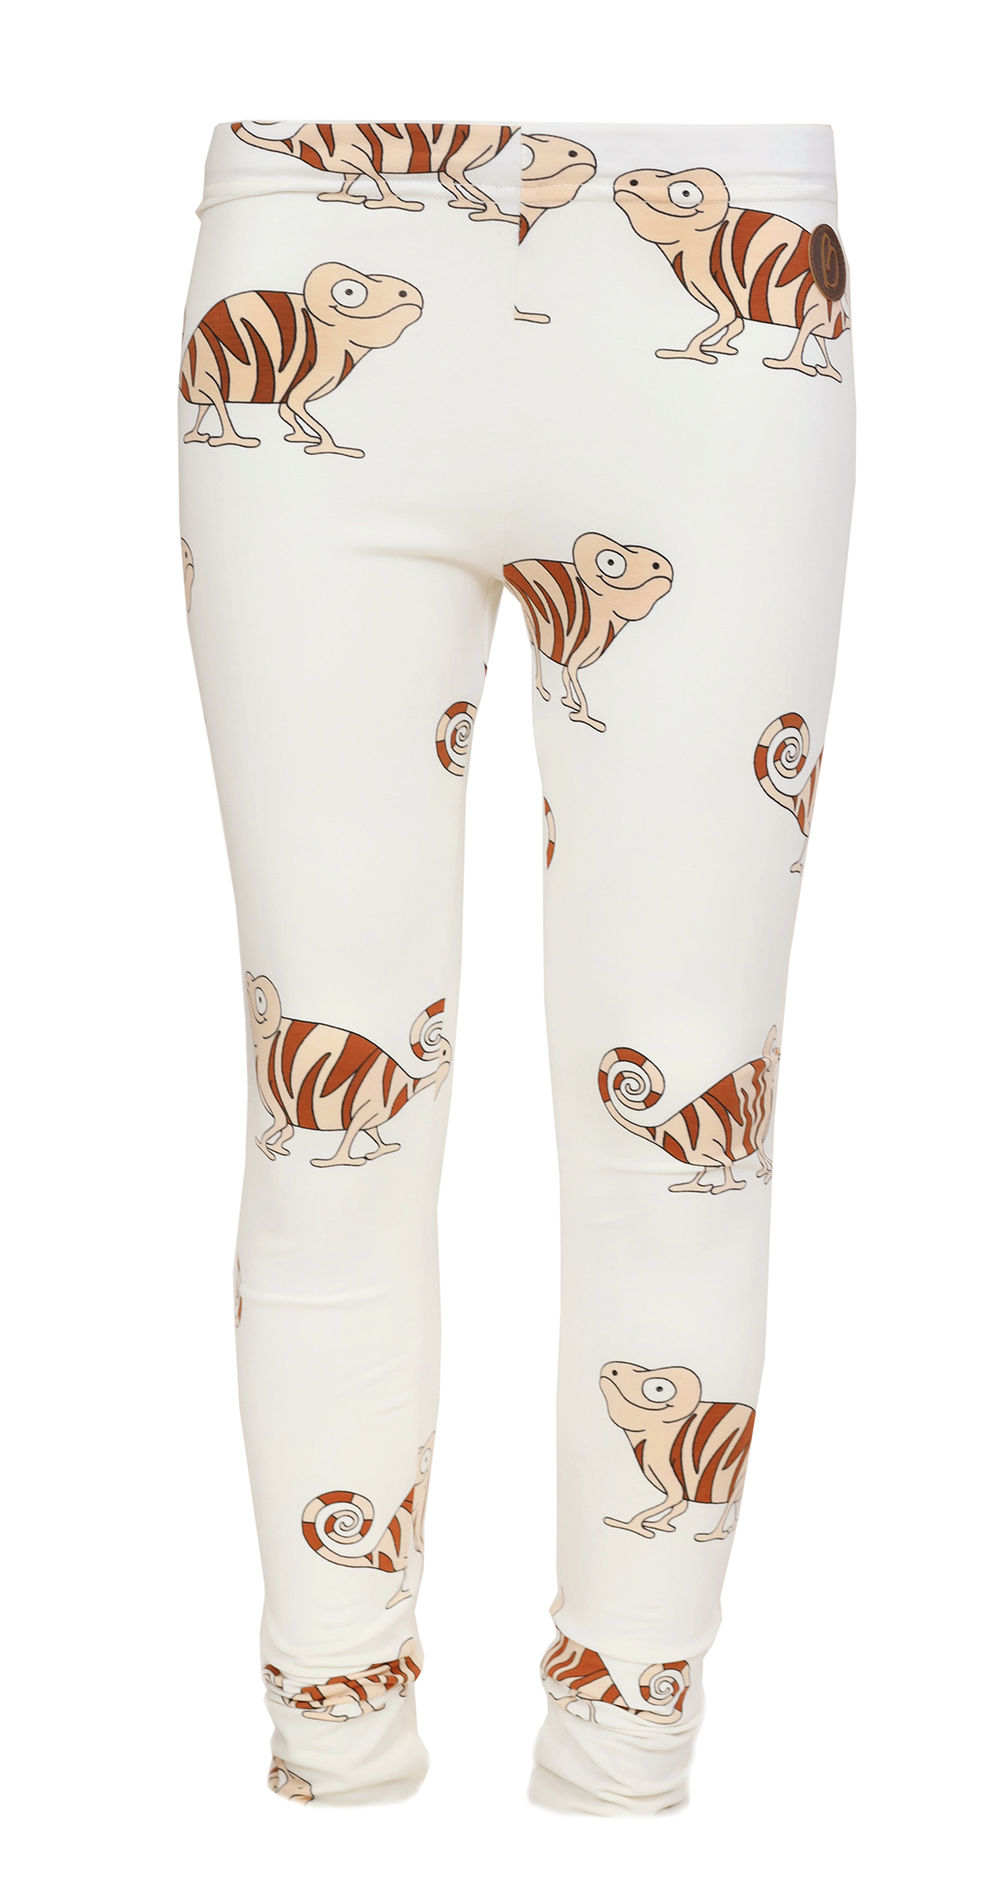 PARIS Leggingsit, Chameleon Brown